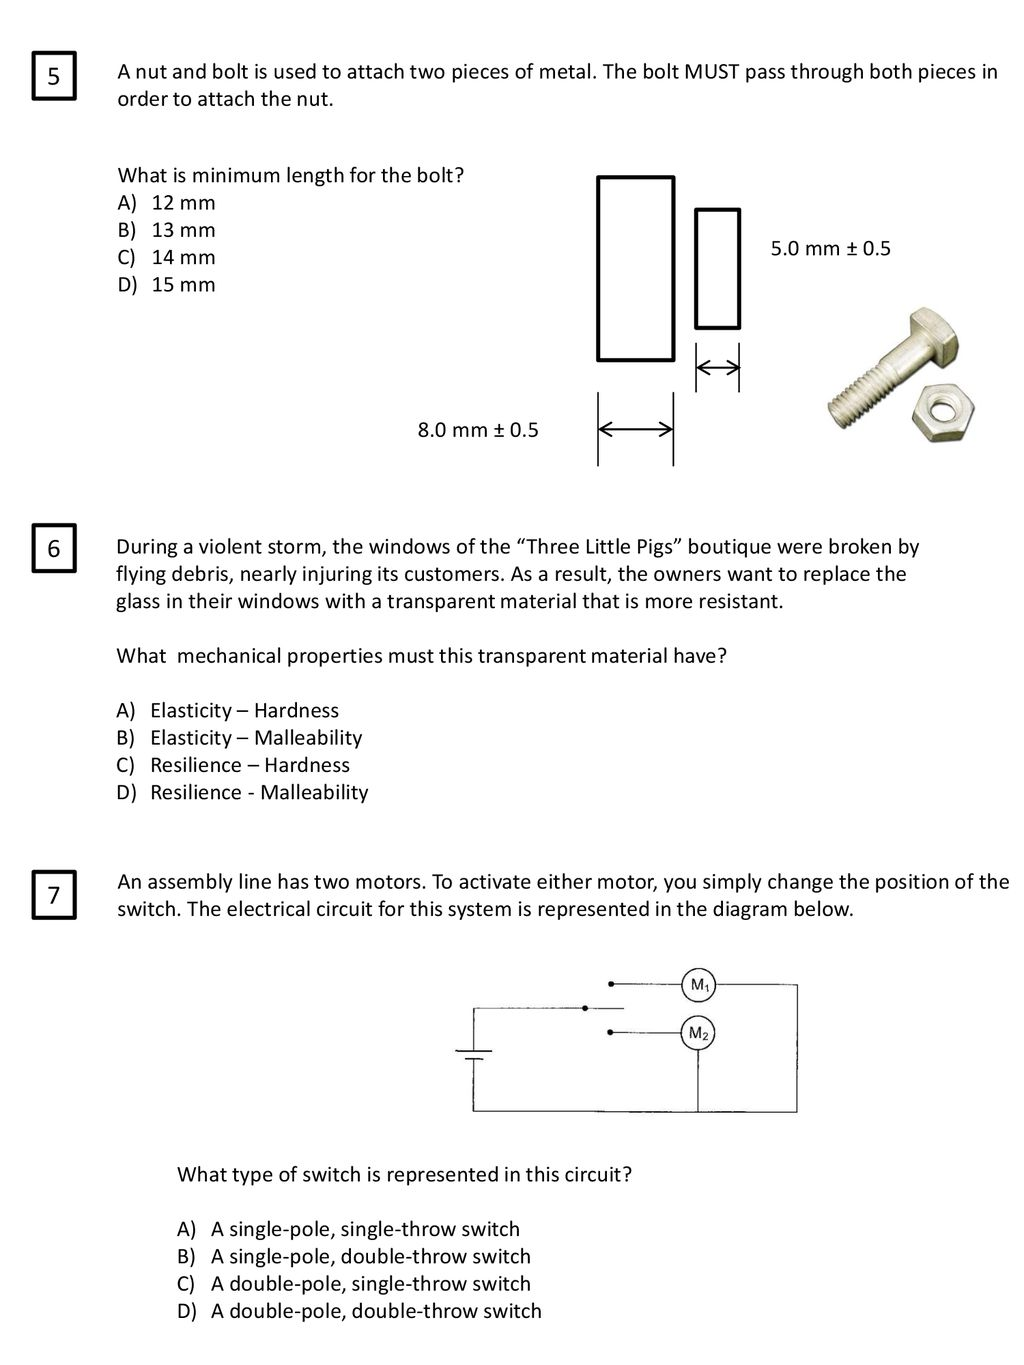 Ast416 Applied Science And Technology Ppt Download Double Pole Throw Switch How To Wire A Single 5 Nut Bolt Is Used Attach Two Pieces Of Metal The